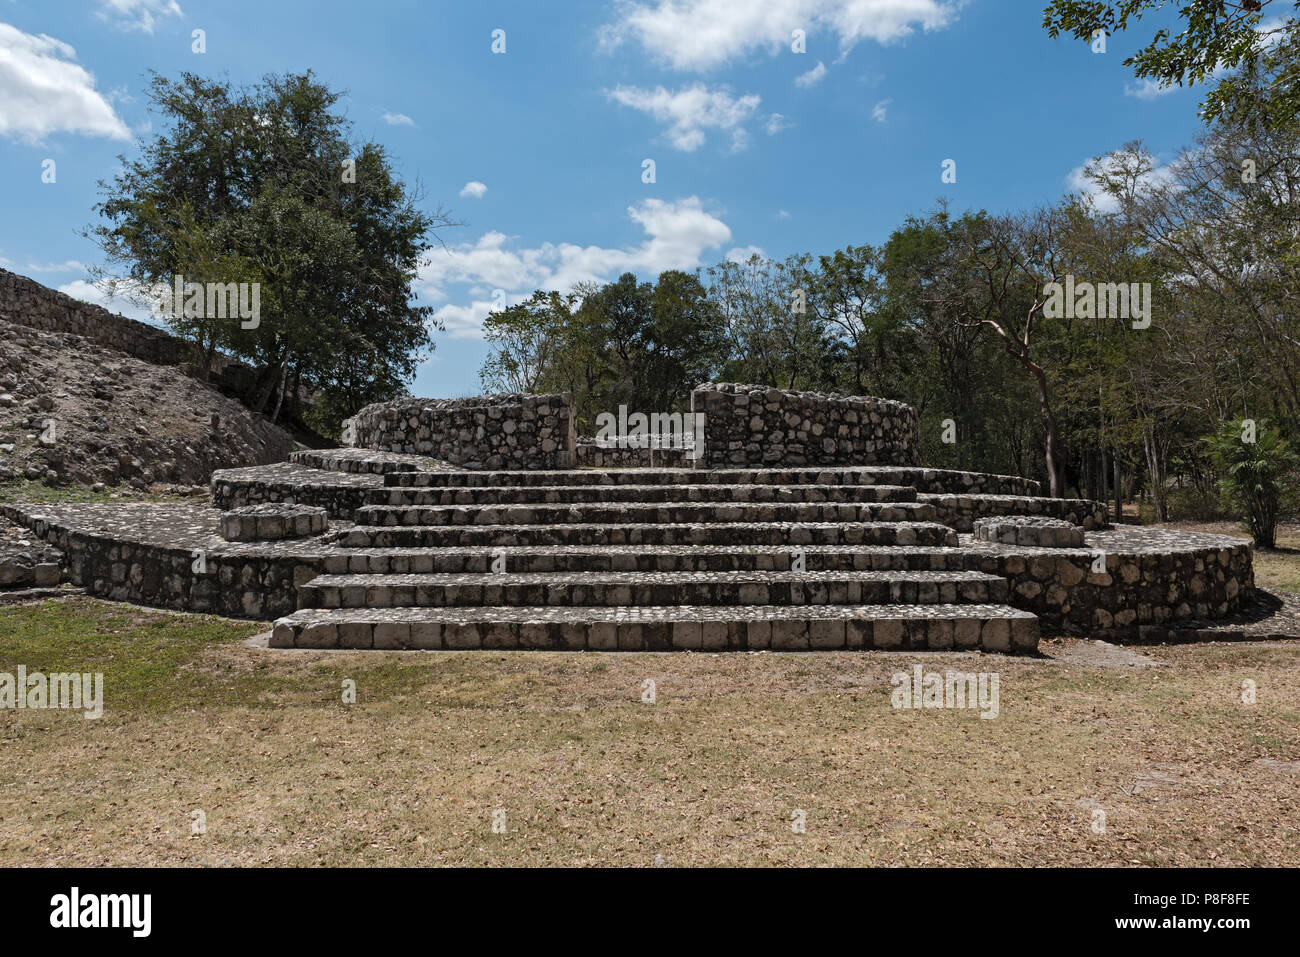 Ruins of the ancient Mayan city of Edzna near campeche, mexico. - Stock Image